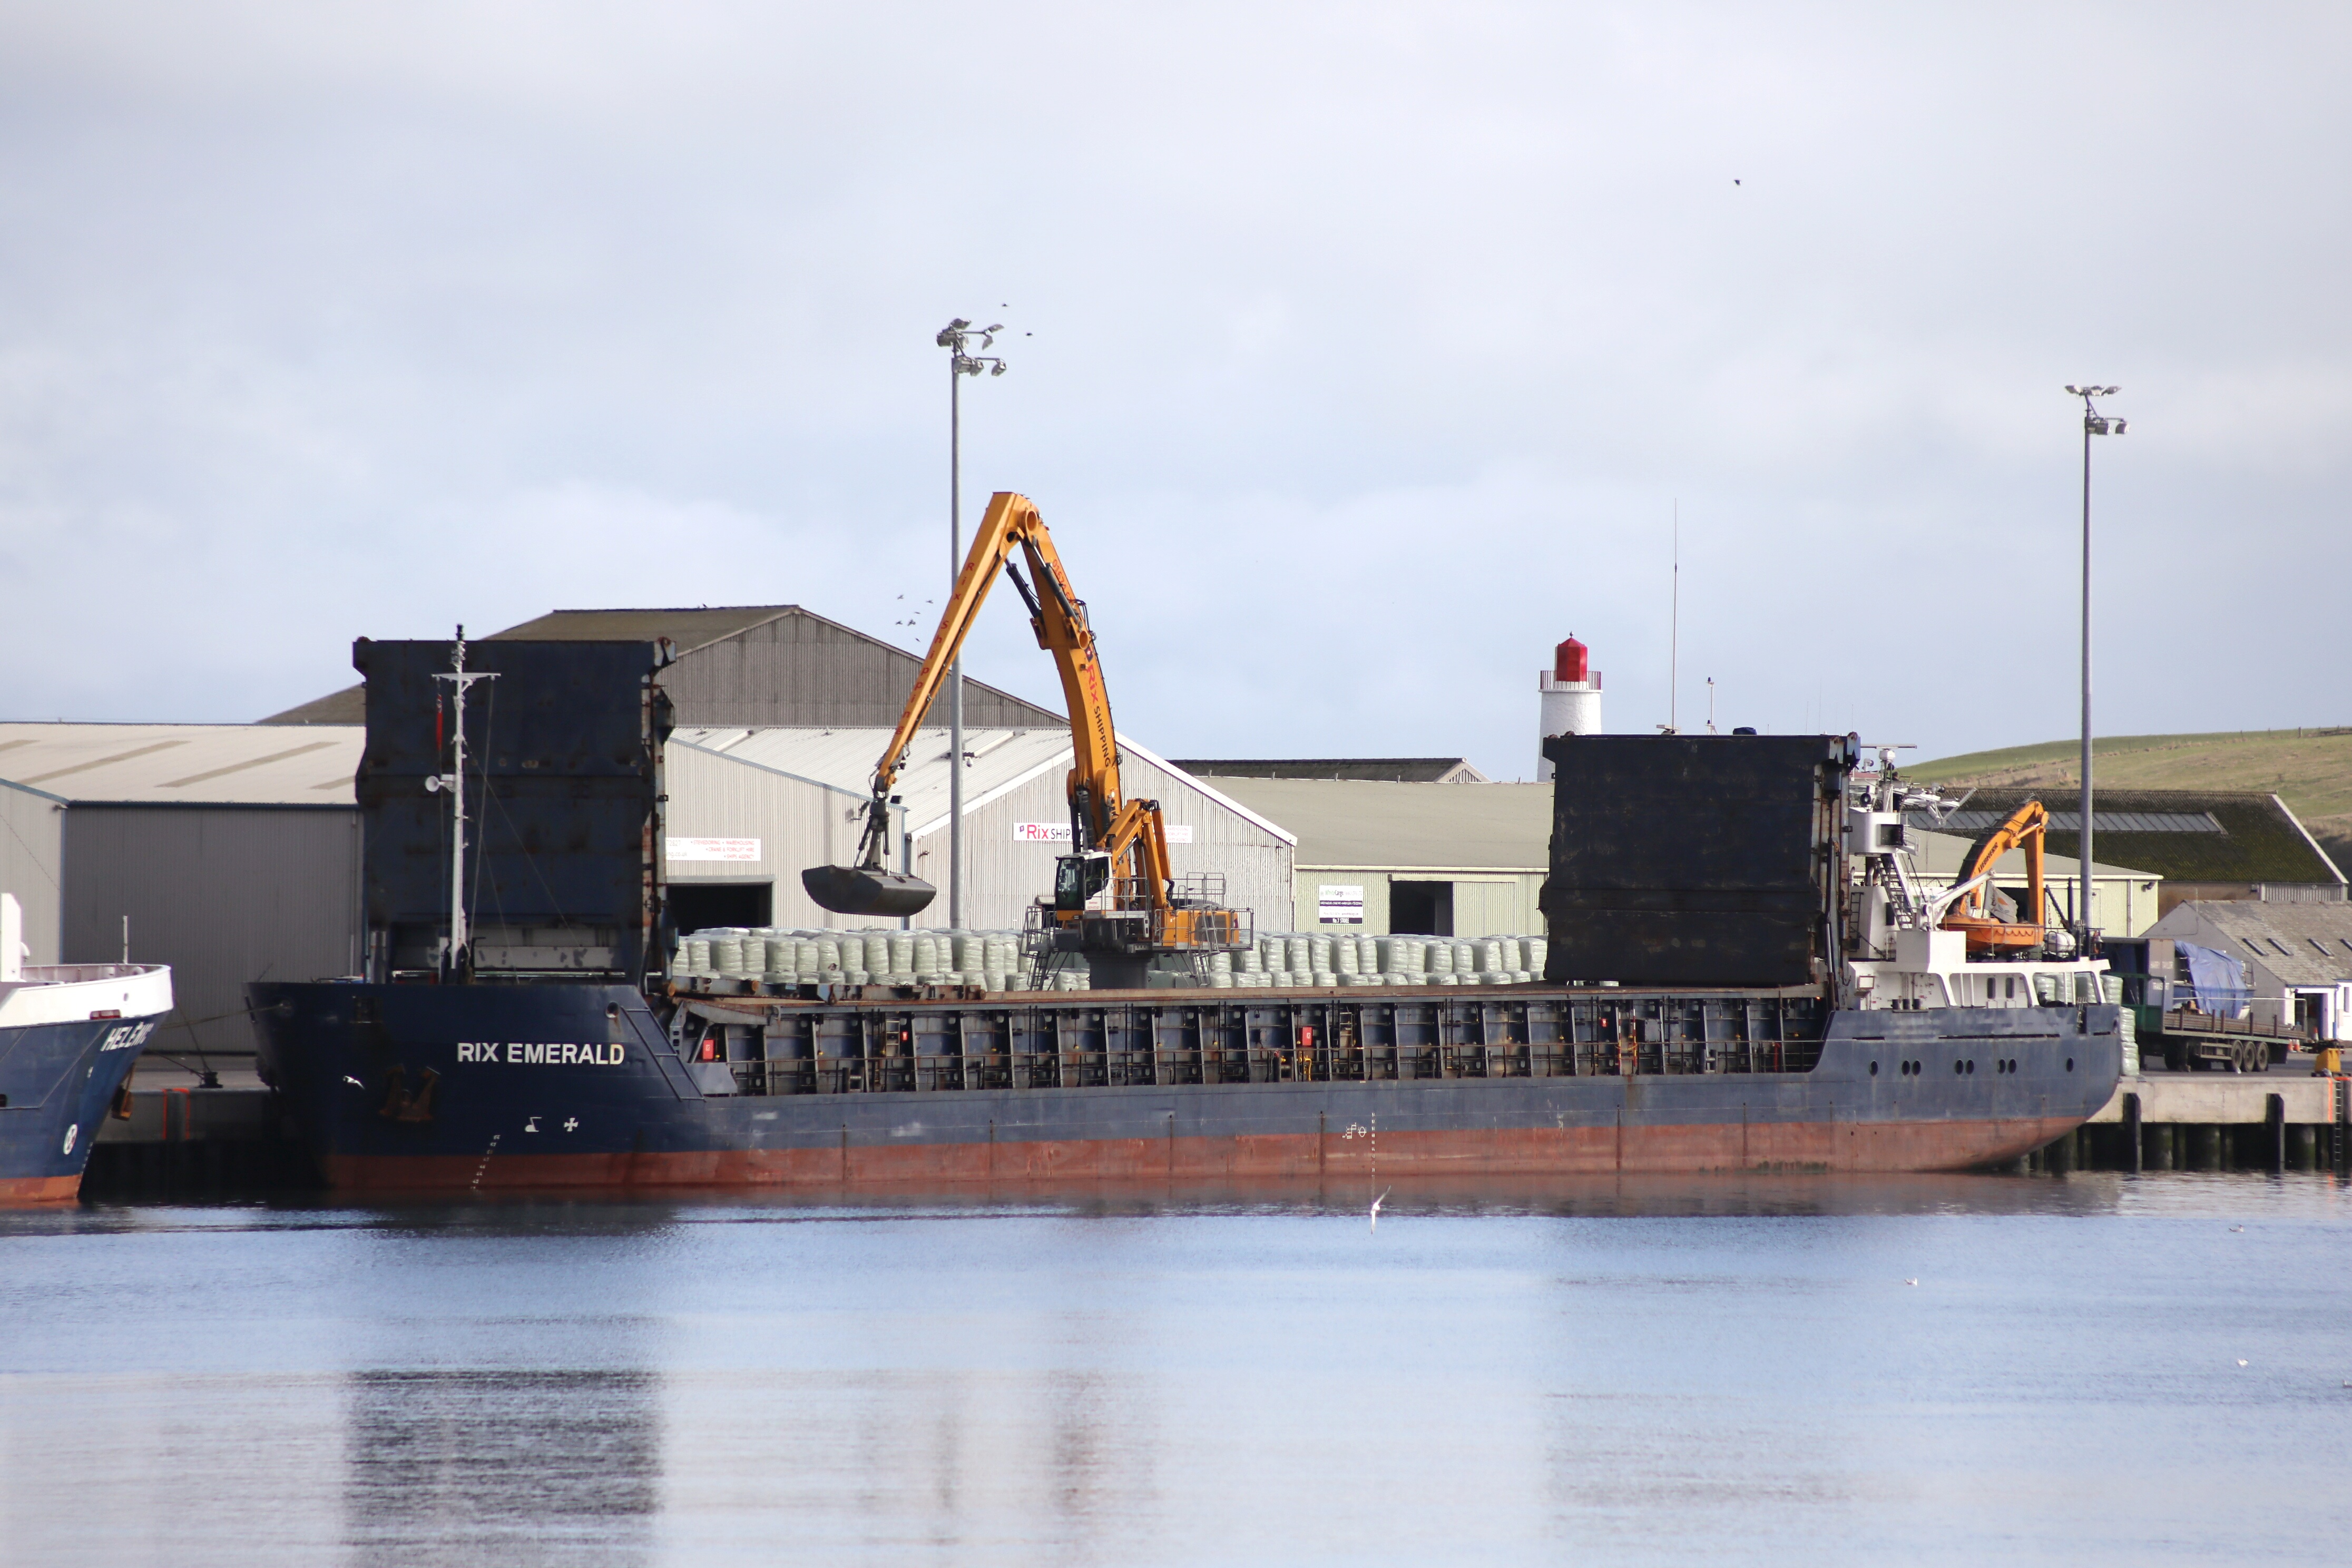 The Rix Emerald berthed at Montrose Harbour.